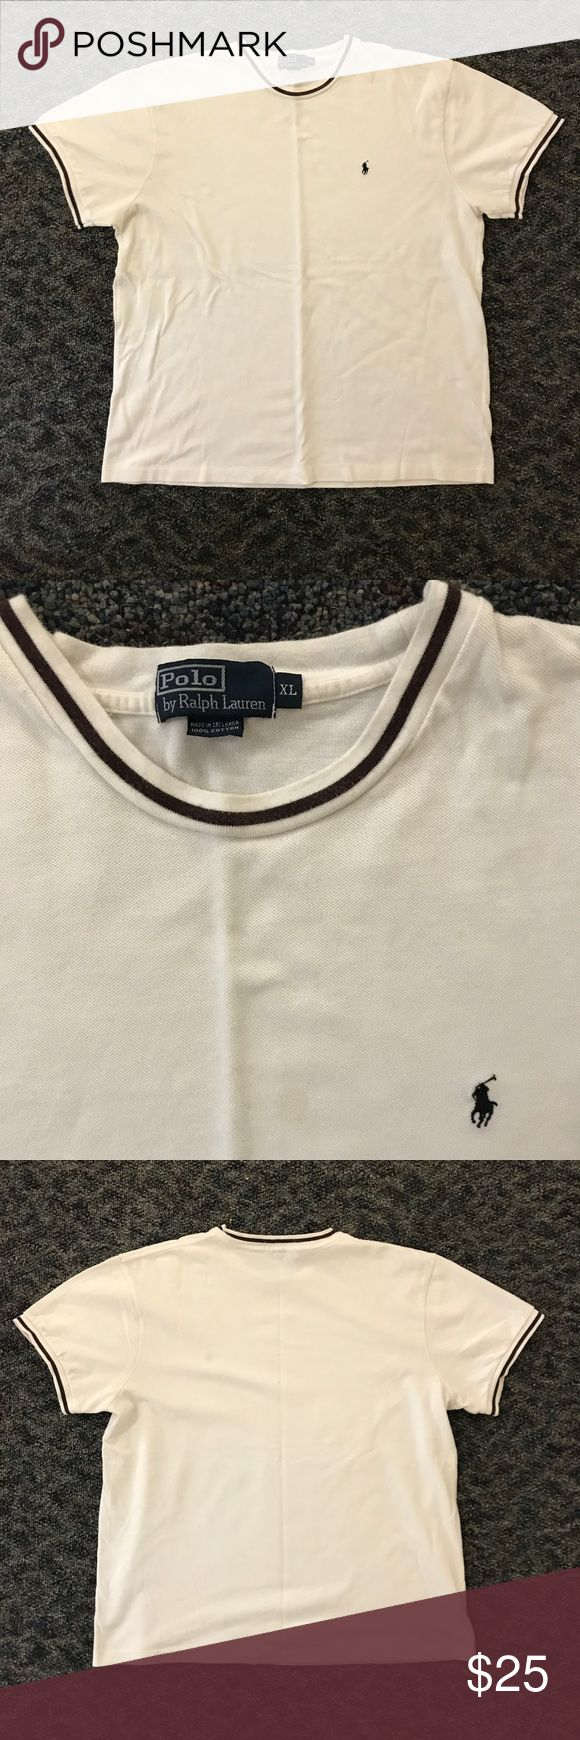 Polo Ralph Lauren Shirt *Message Me For First Buyer's Discount*  Polo shirt with rim design on collar and sleeves. Small stain on the front. One of a kind Polo piece!  IGNORE TAGS: MOSSIMO SUPPLY CO., VANS, ADIDAS, NIKE, VINTAGE VINEYARDS, STARTER, CONVERSE, AIR JORDAN, J. CREW, TOMMY HILFIGER, THE NORTH FACE, DITCH PLAINS, CHAMPION, LACOSTE, BLAC LABEL, RALPH LAUREN, REEBOK, OLD NAVY, AMERICAN APPAREL, NAUTICA, ABERCROMBIE & FITCH, OBEY, FOREVER 21, SKULLCANDY, SUPREME, PACSUN, POLO, LEVI'S…